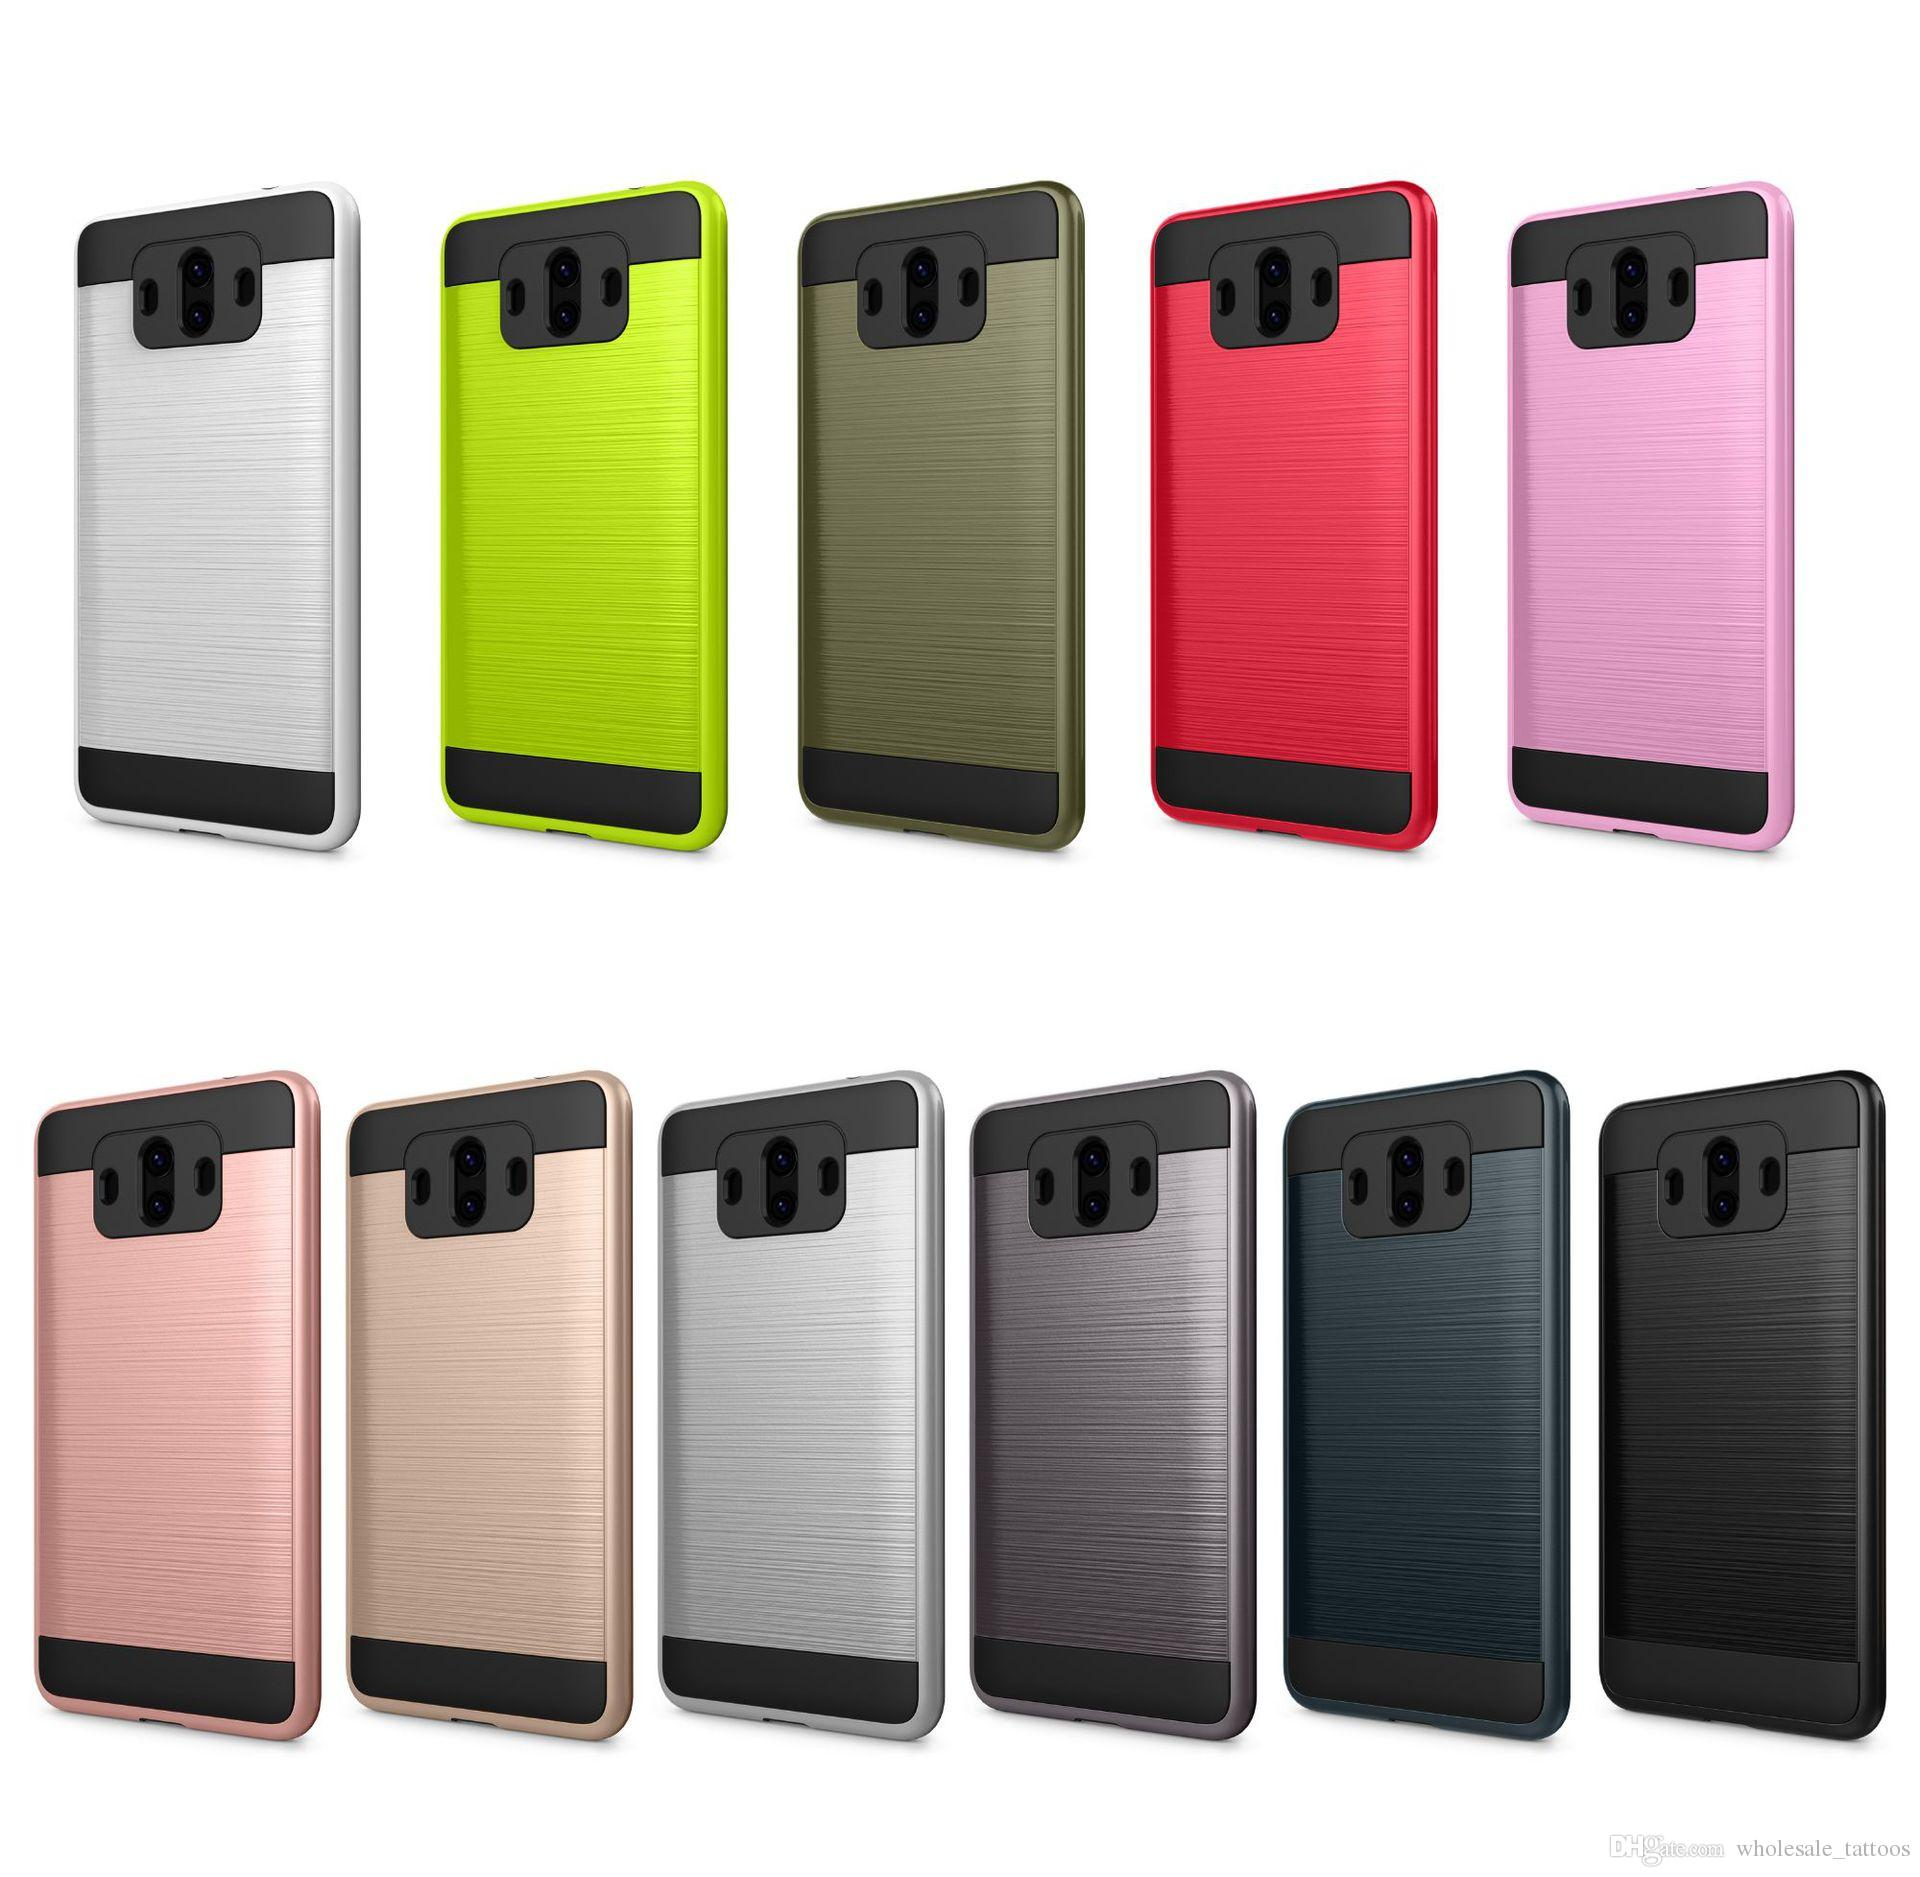 hot sales 3f5e6 6fb9c Hybrid Brushed Armor Case Soft TPU Hard PC Shockproof Cover For Huawei  Elate H1711 Mate 10 Ascend XT2 Mate 10 Pro Mate 9 Sensa LTE H715BL